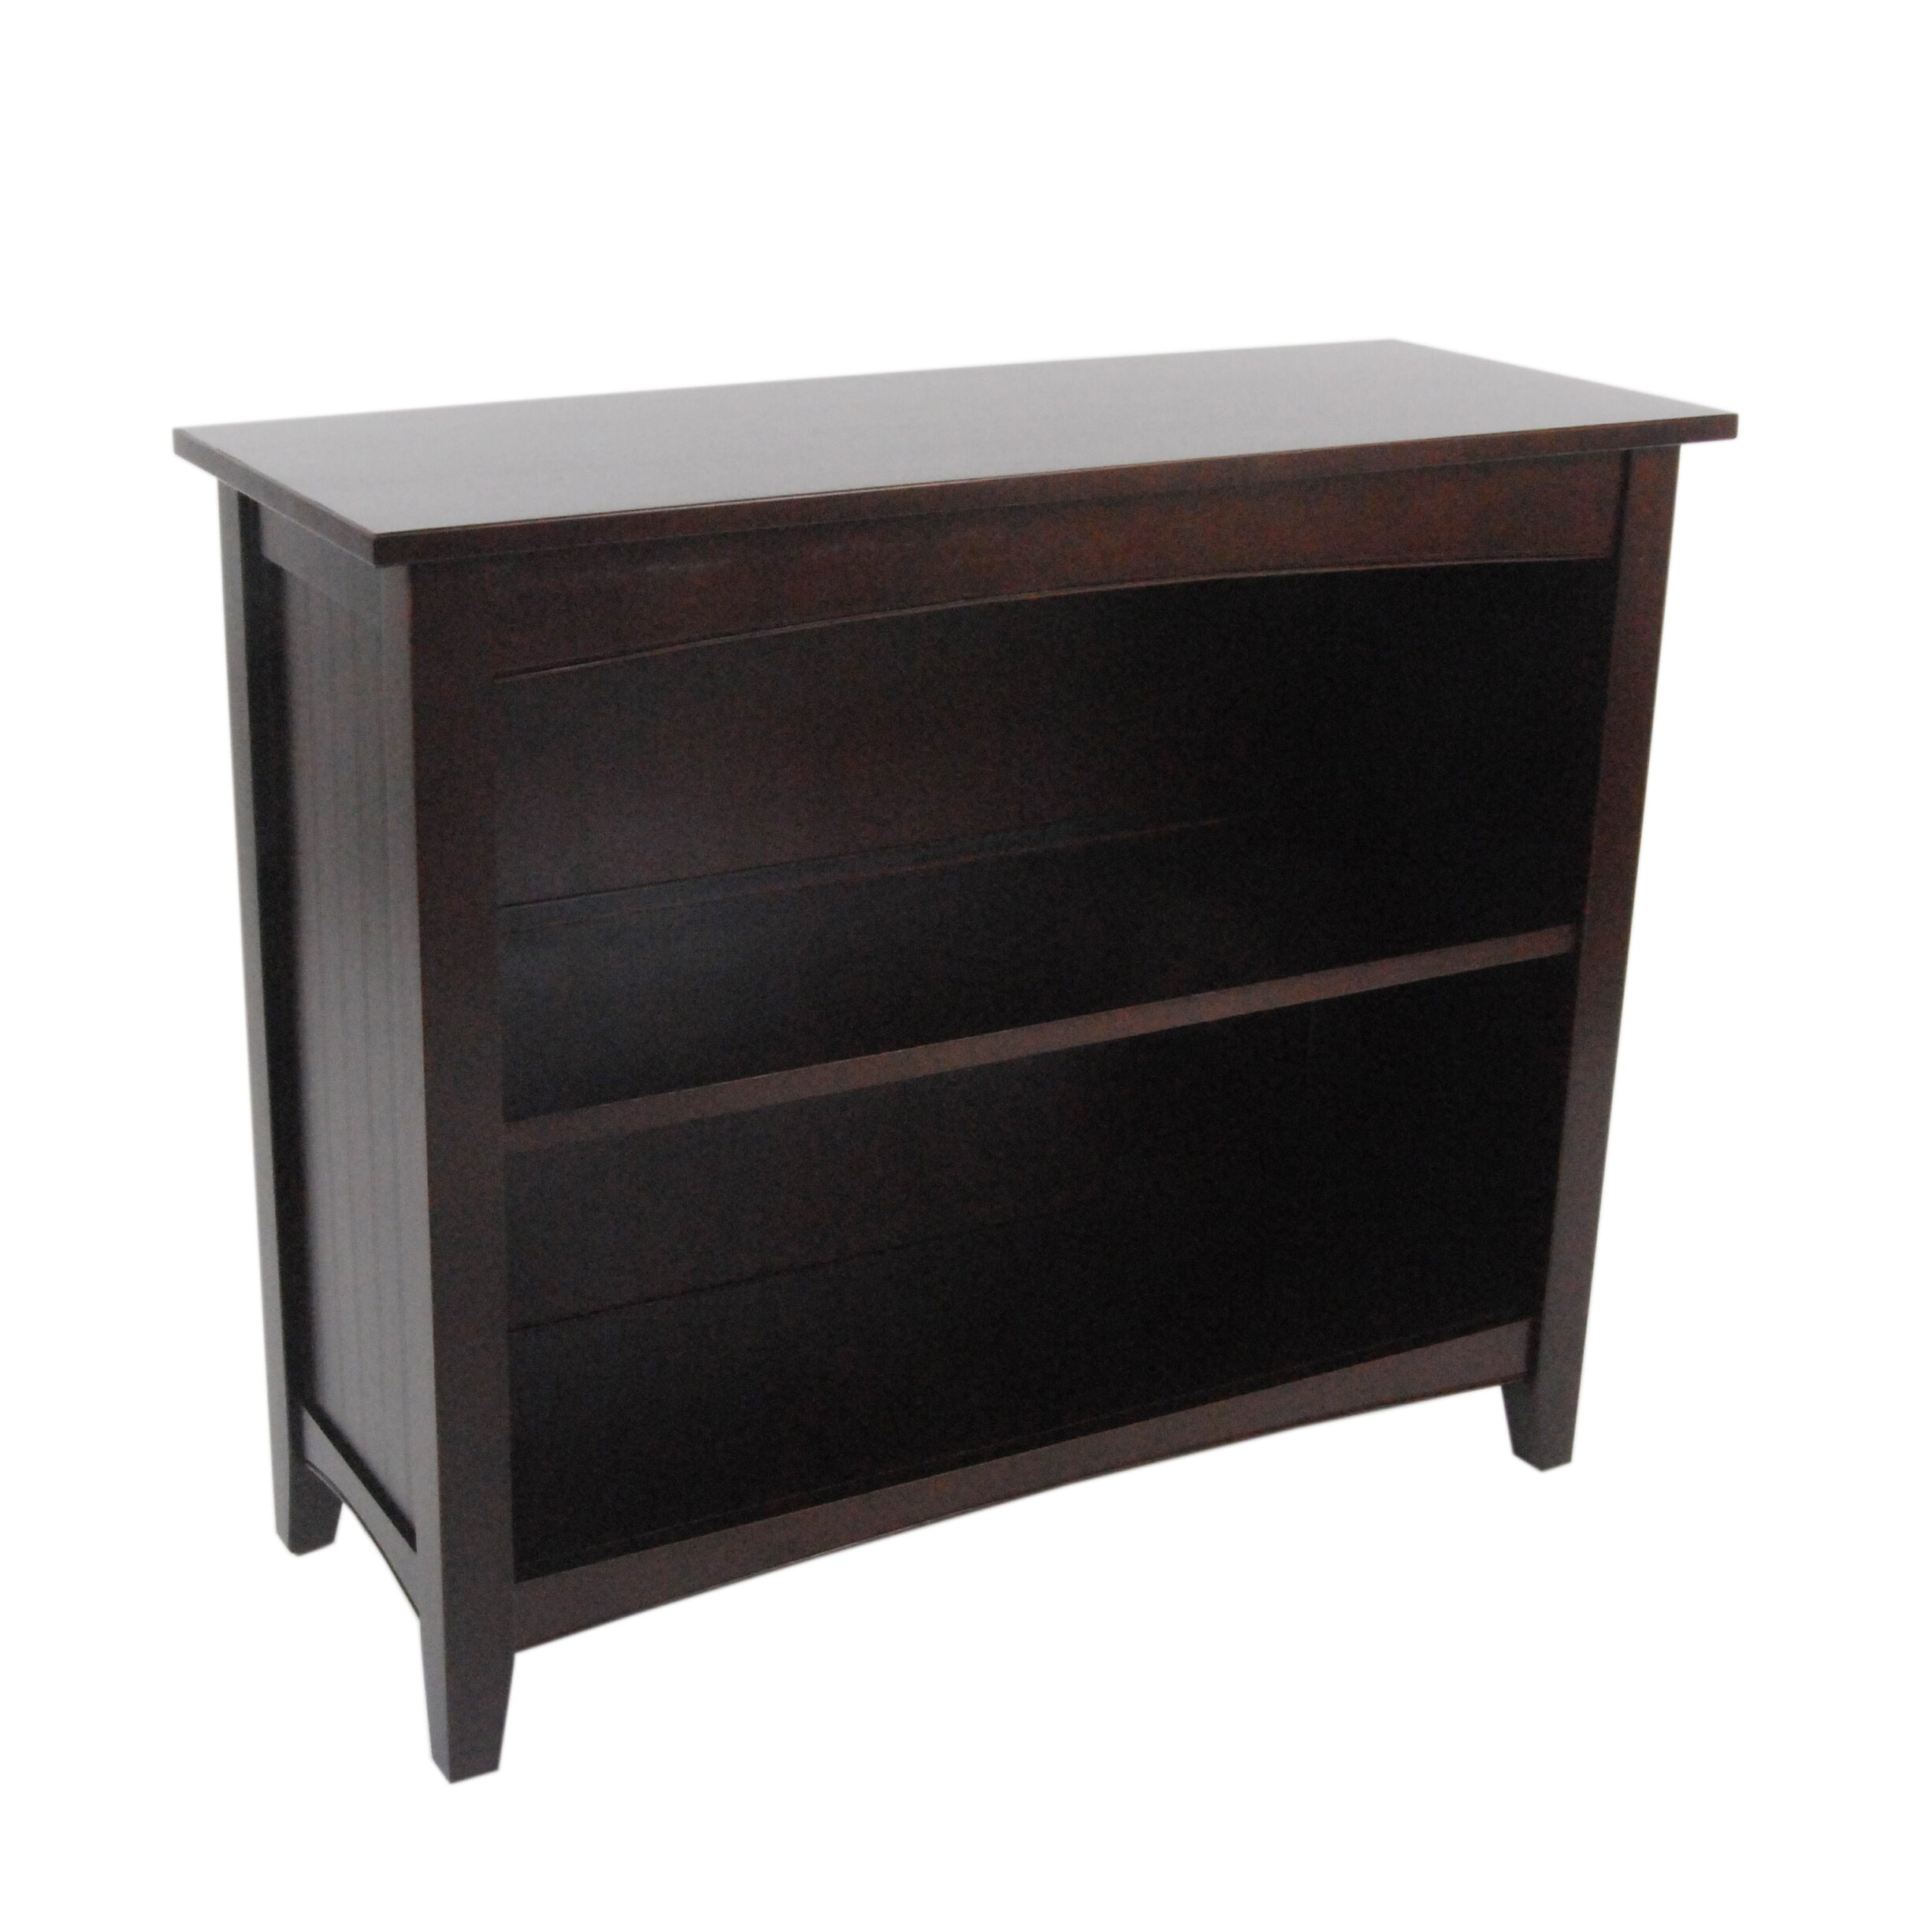 "Alcott Hill Bel Air 30"" Standard Bookcase & Reviews"